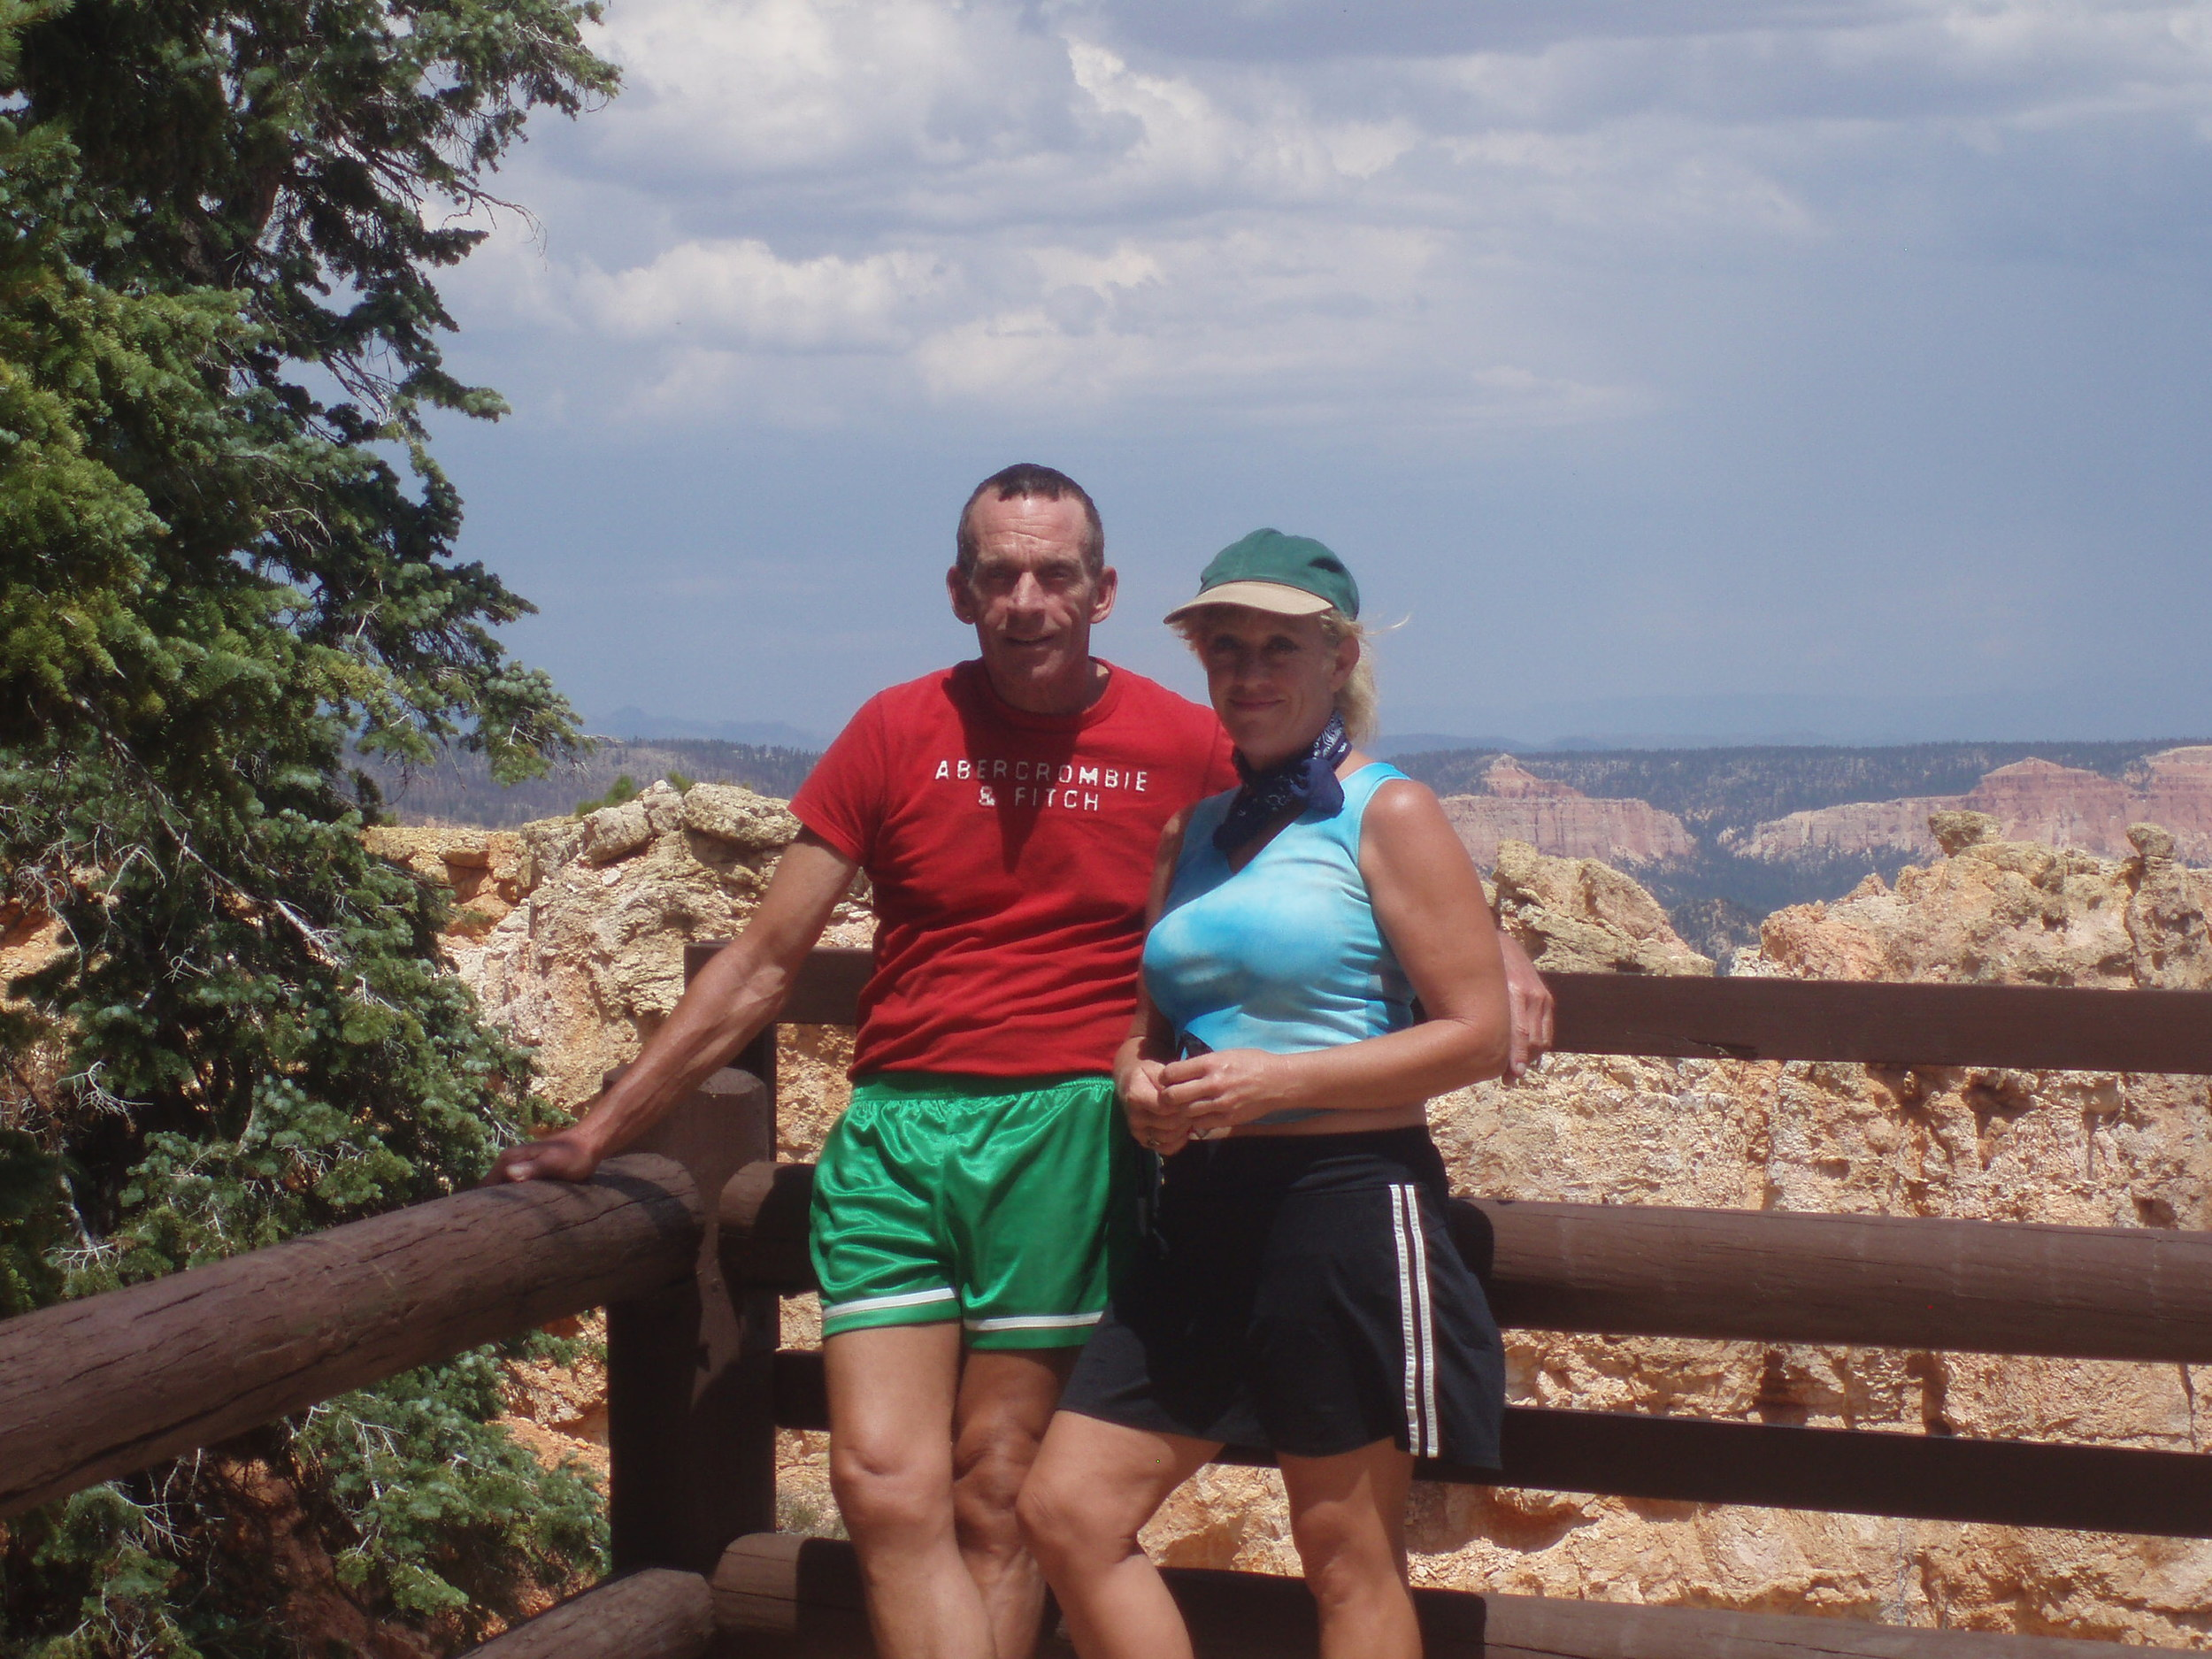 With my brother Mike at Bryce National Park, Utah